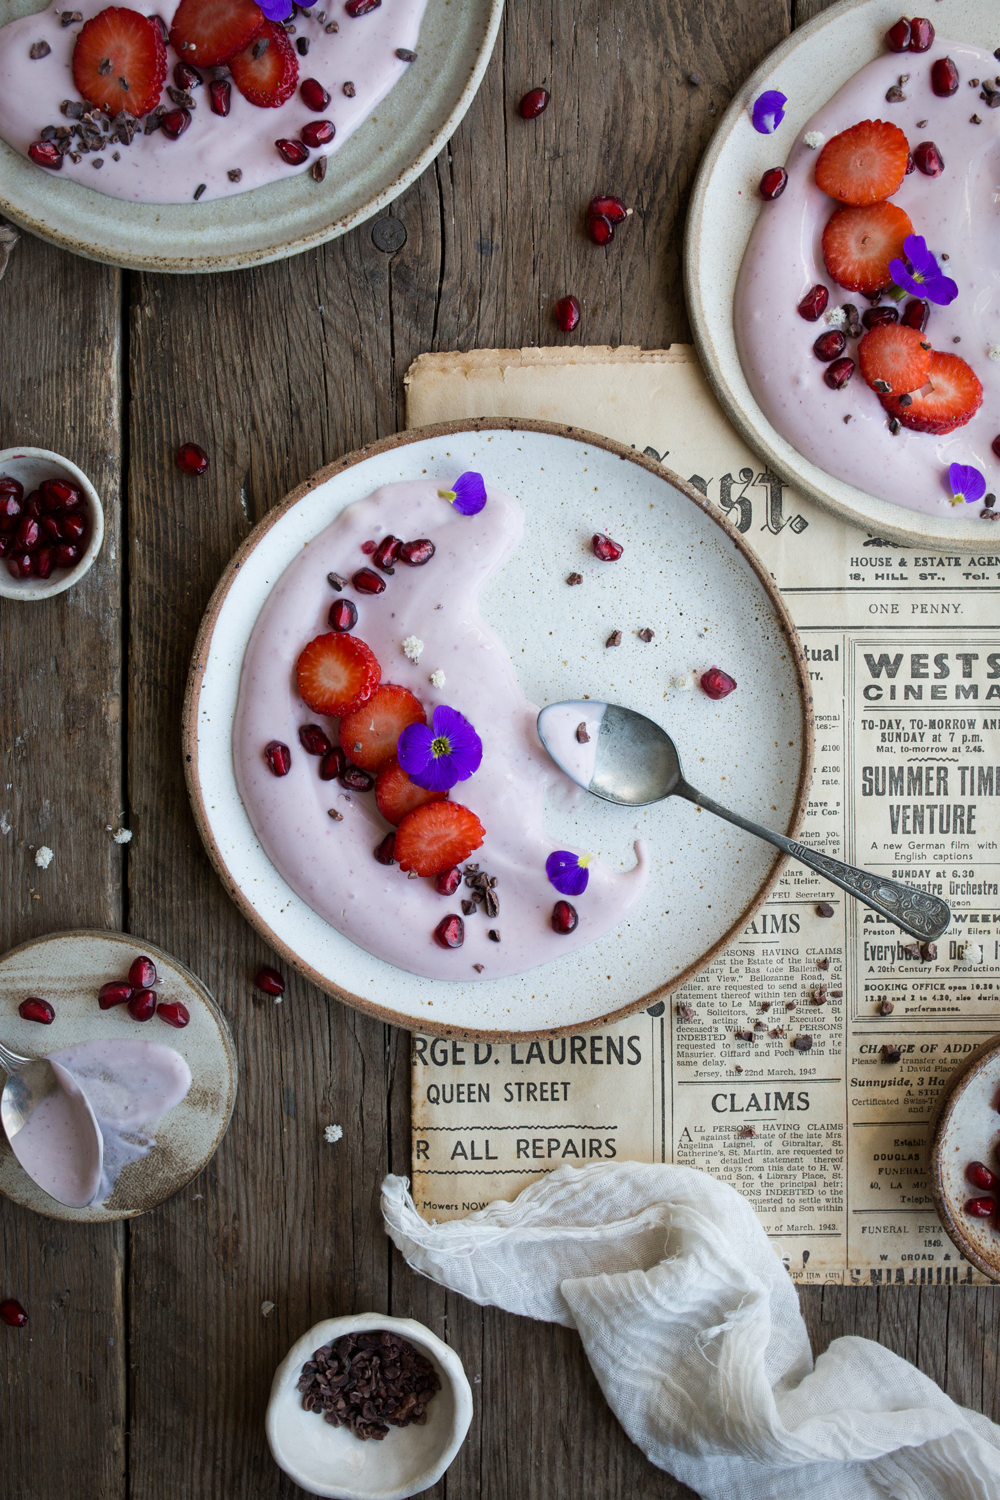 Find an on-line food photography, food styling and visual story telling course - The Little Plantation